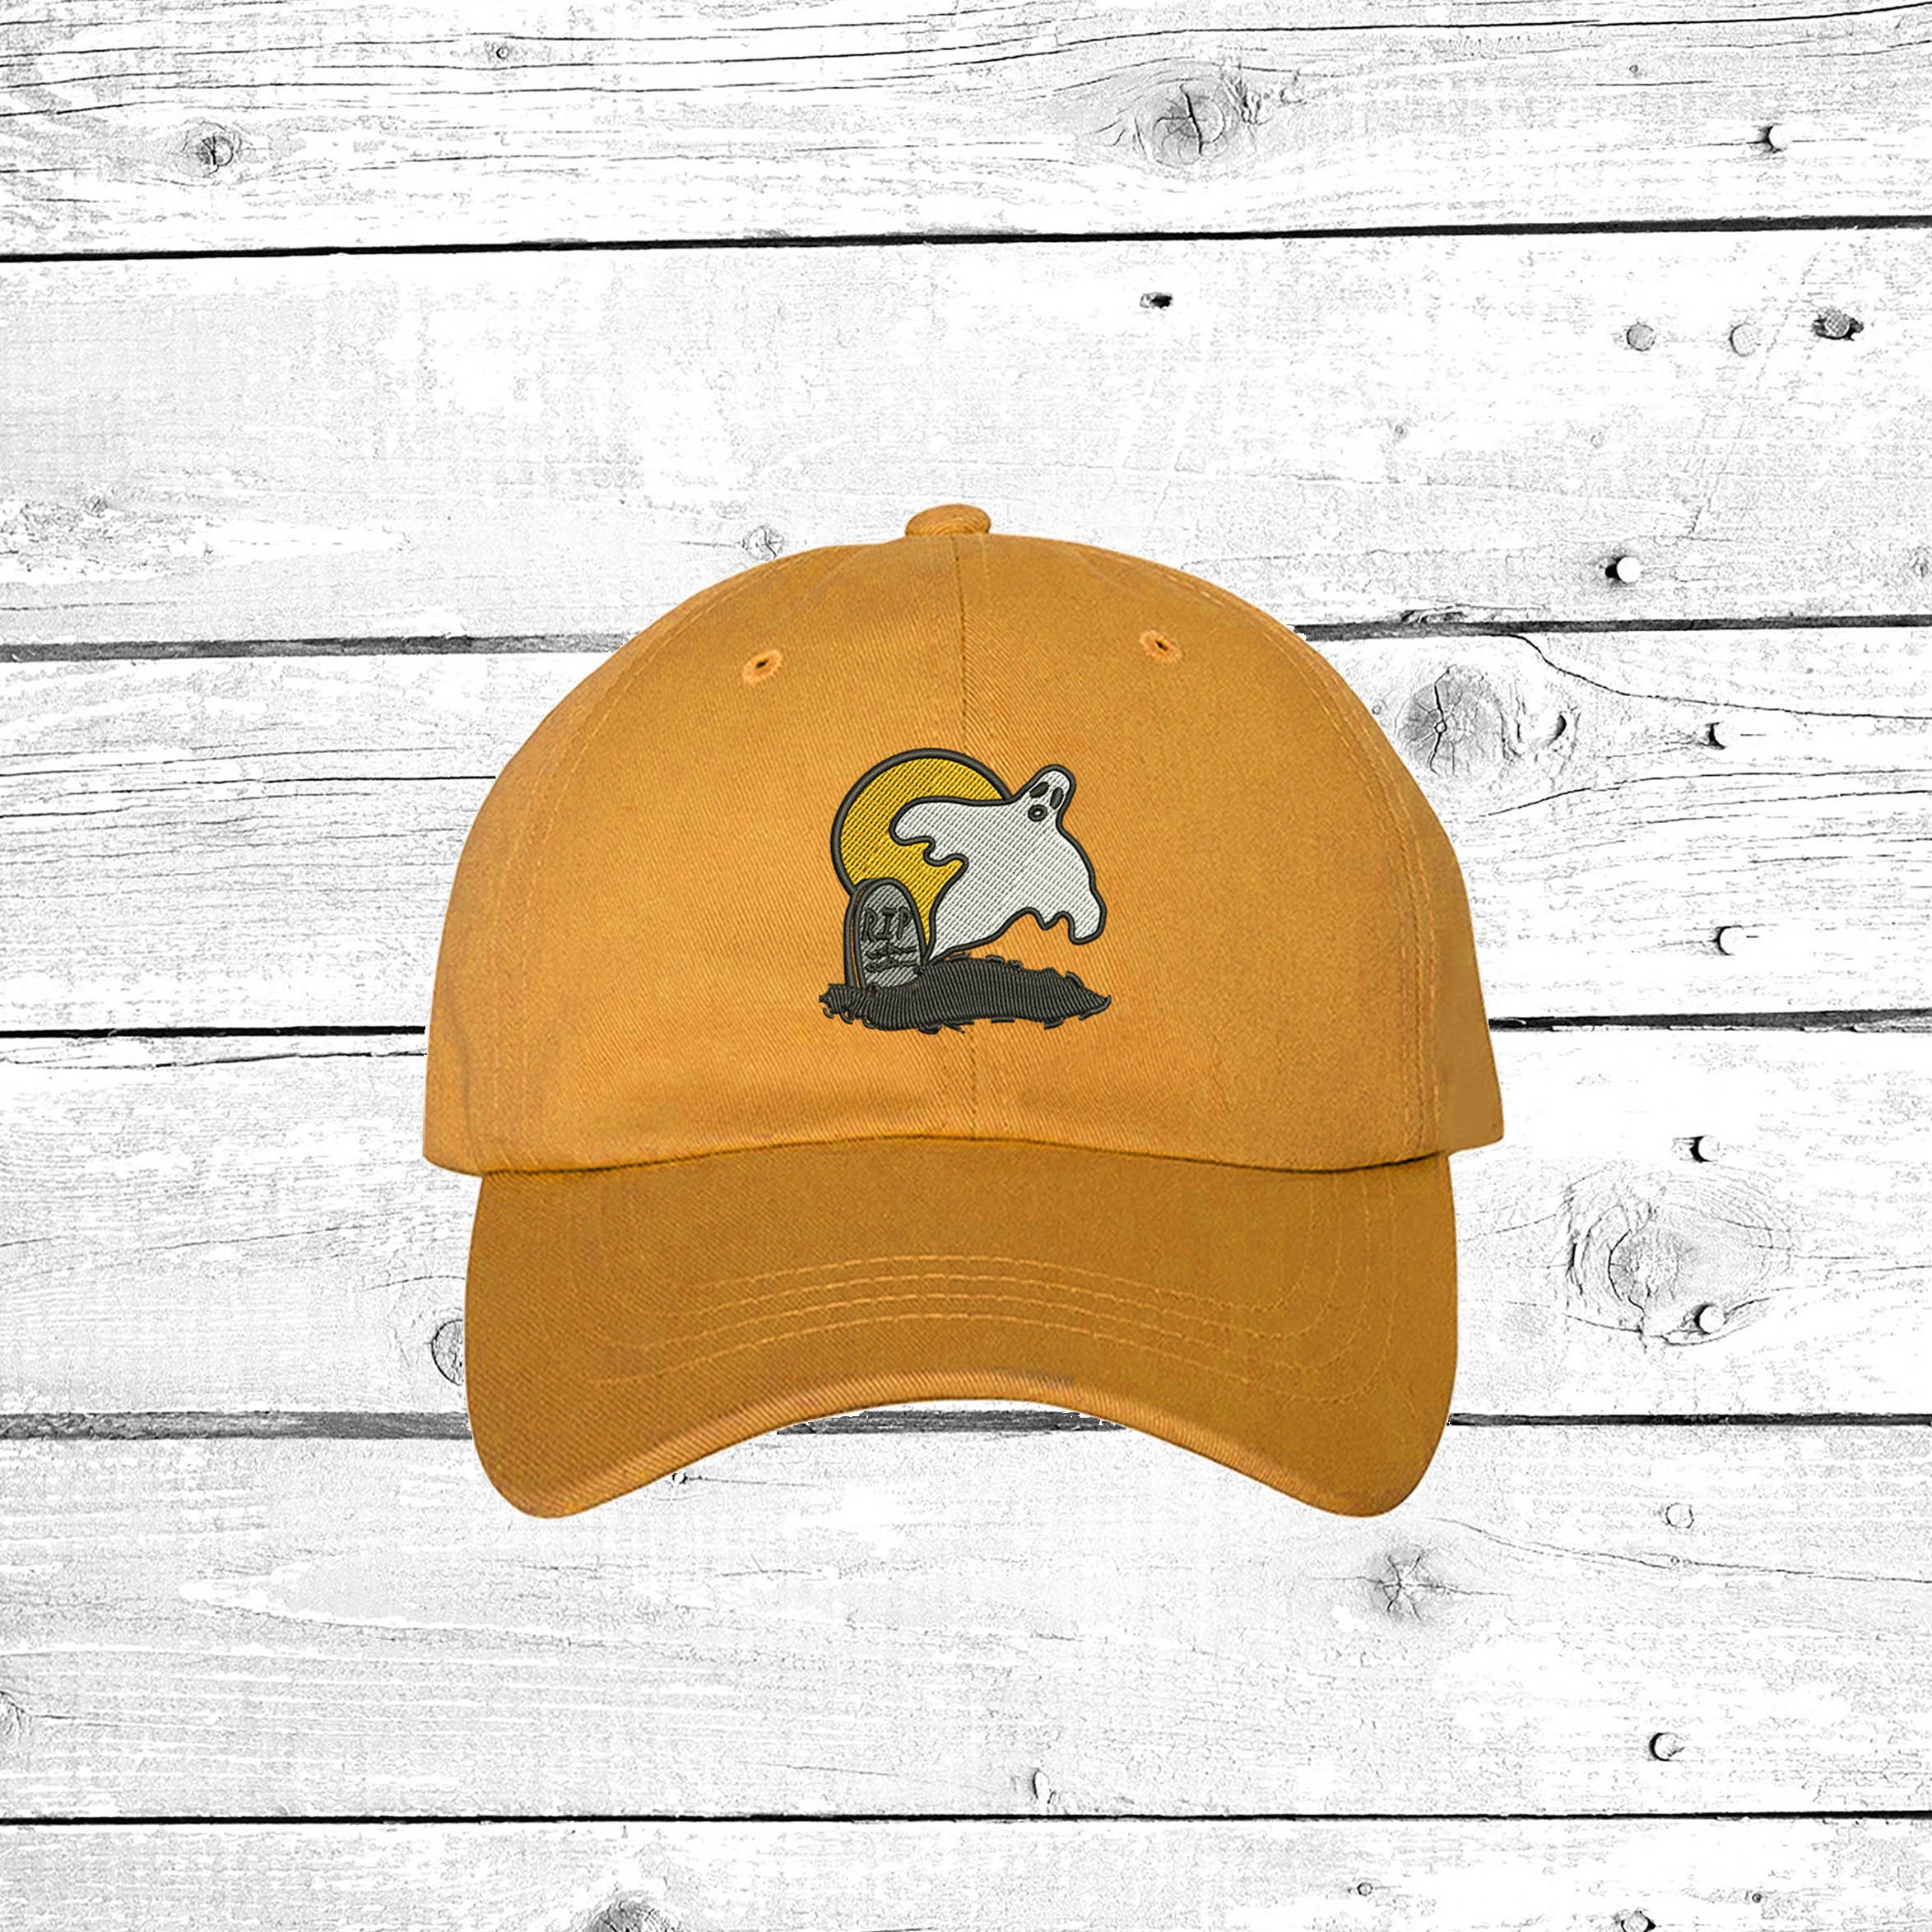 Ghost Dad hat Dad Cap RIP GHOST Hat Spooky Costume Hat Grunge ... a10ce9f15215